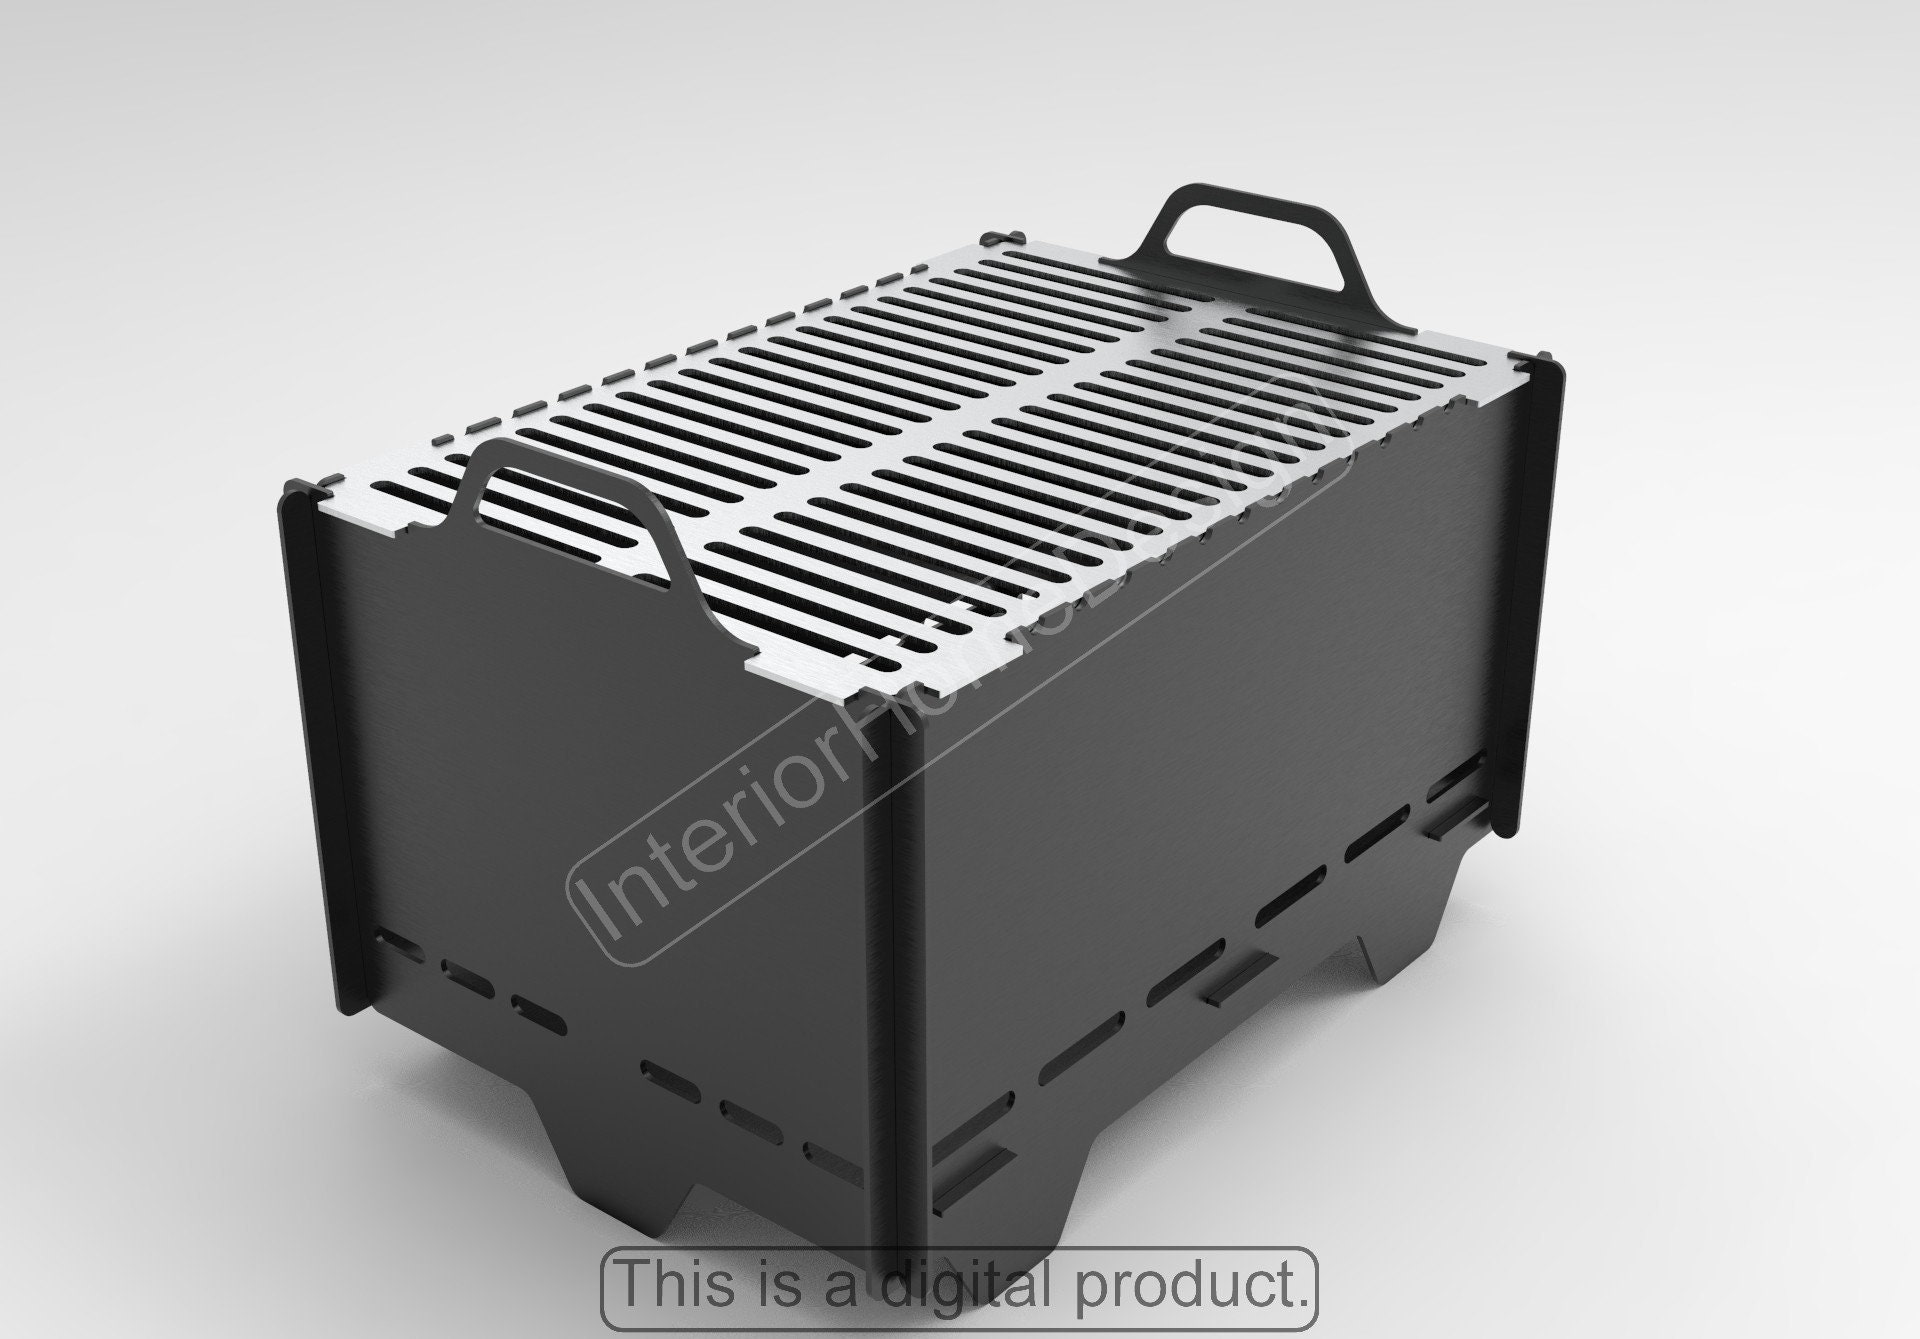 Digital product SVG for CNC Car Grill Laser files DXF Mangal Barbecue Bbq Plasma Collapsible FirePit Pickup Ram 1500 New Fire Pit